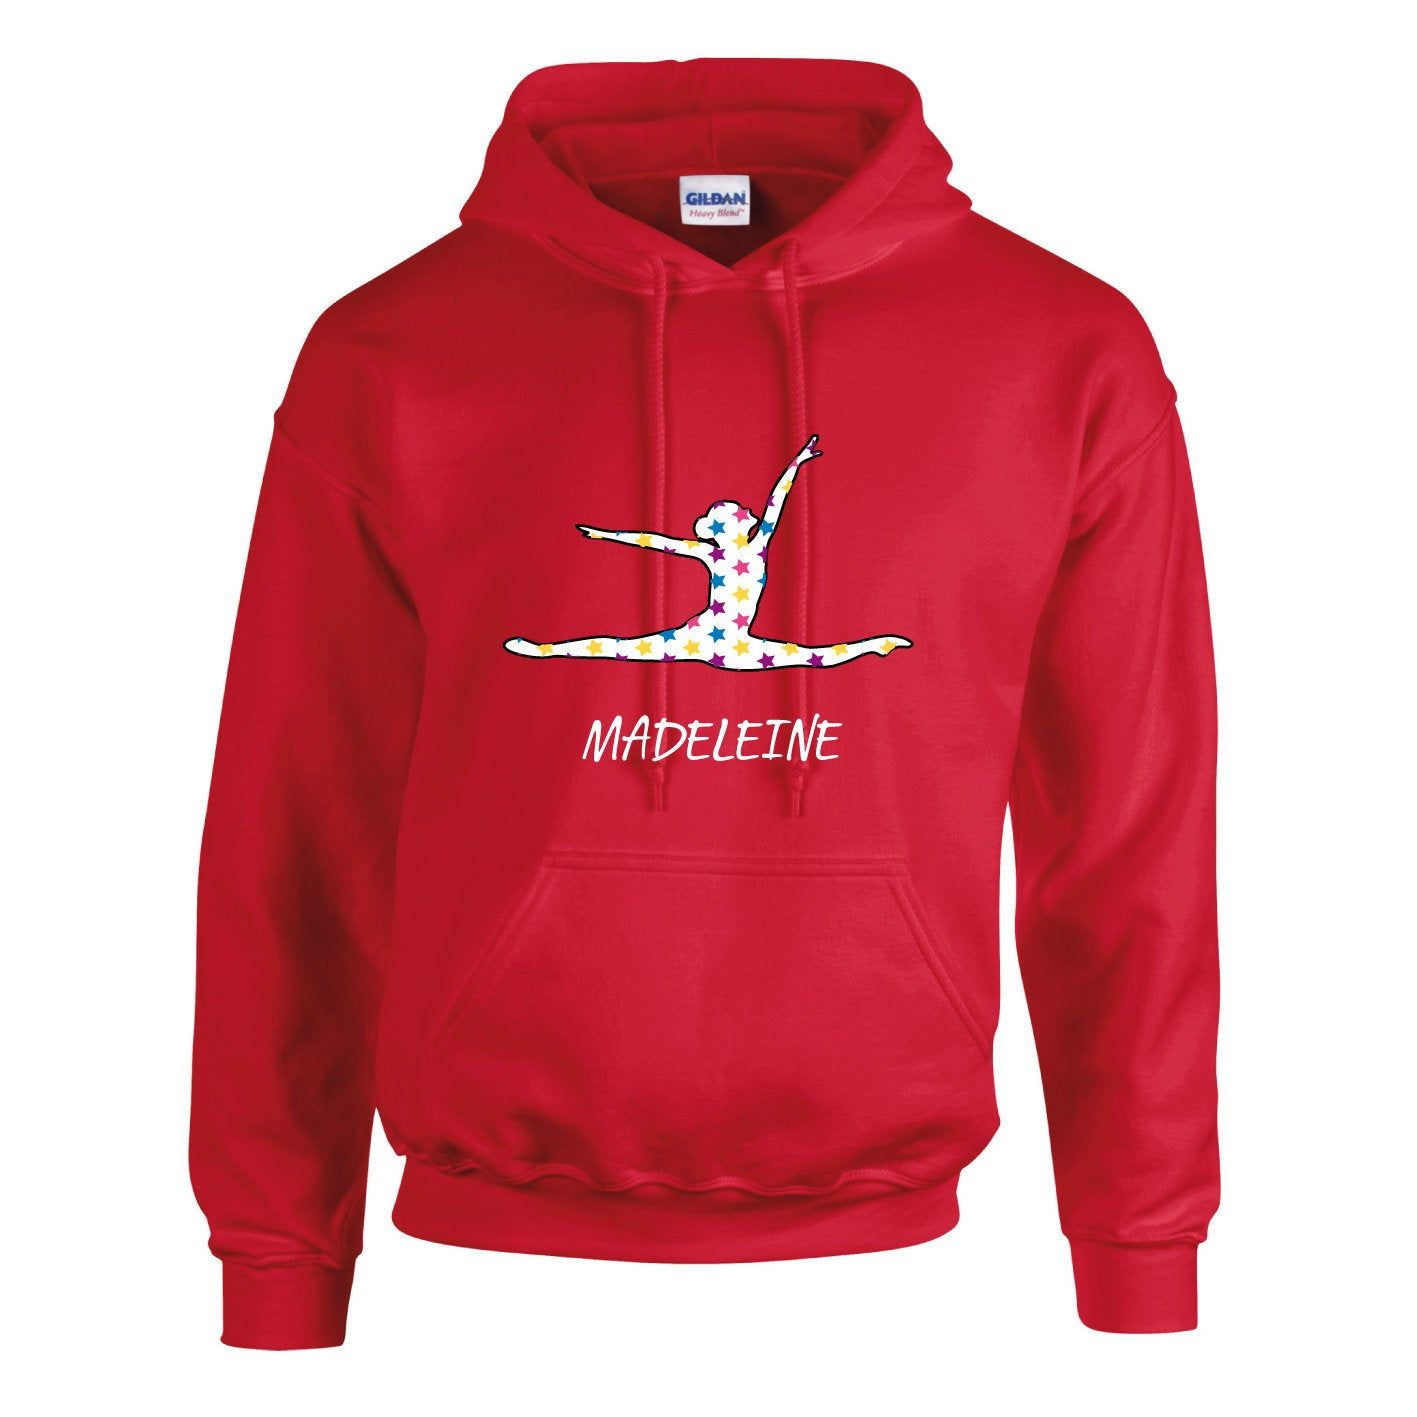 Ileisure Girls Personalised Air Jump Pose Printed Stars Design Hoodie With White Print Hooded Sweatsh Printed Hooded Sweatshirt Hoodie Design Girl Personalized [ 1417 x 1417 Pixel ]